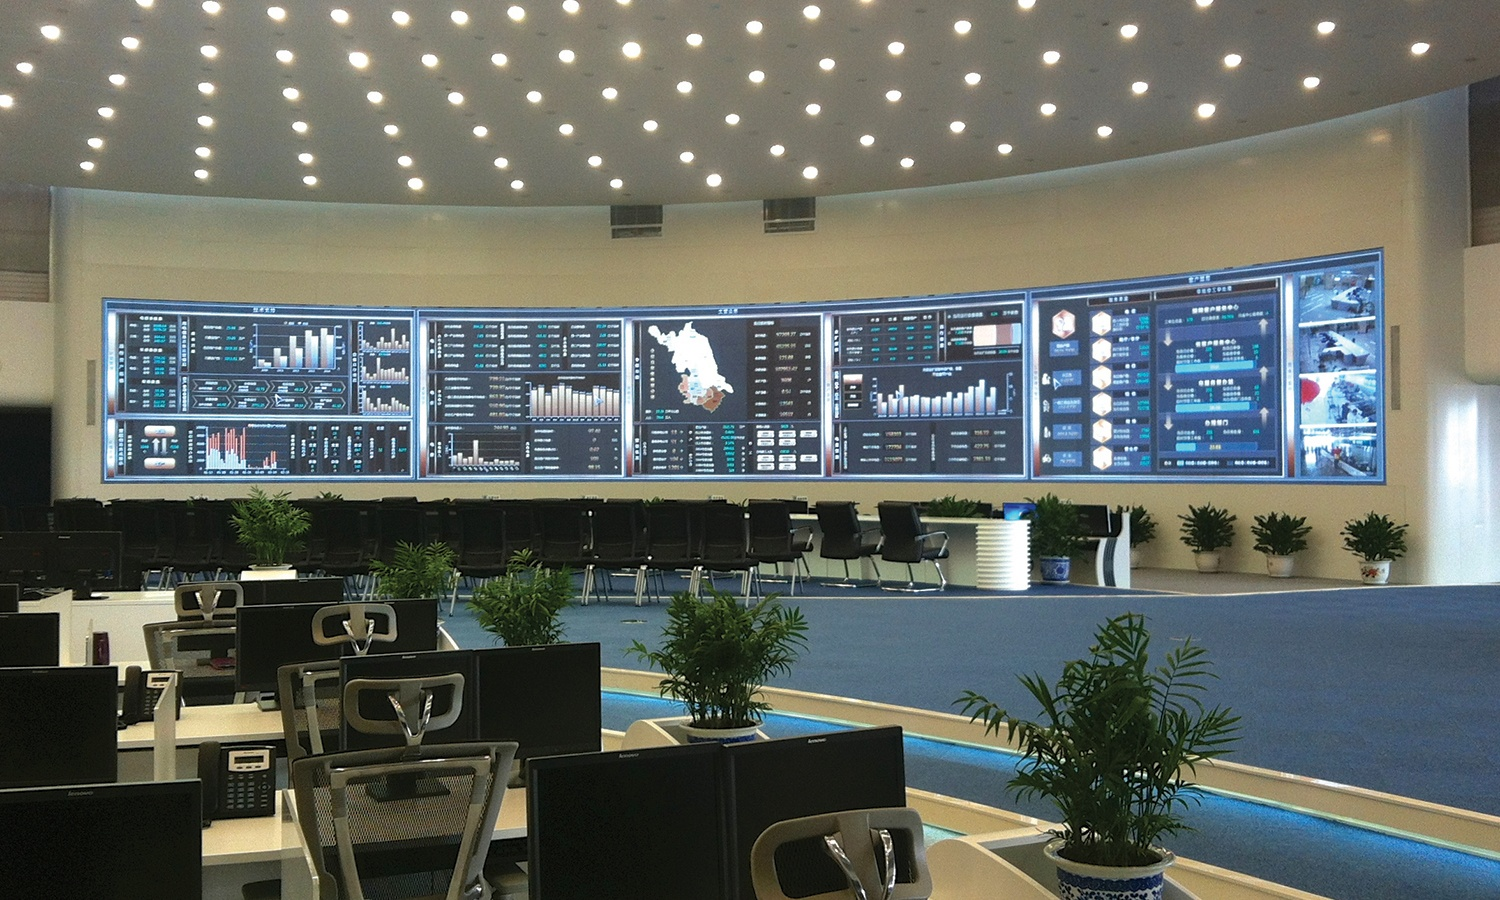 prysm-video-wall-at-jiangsu-electric-power.jpg